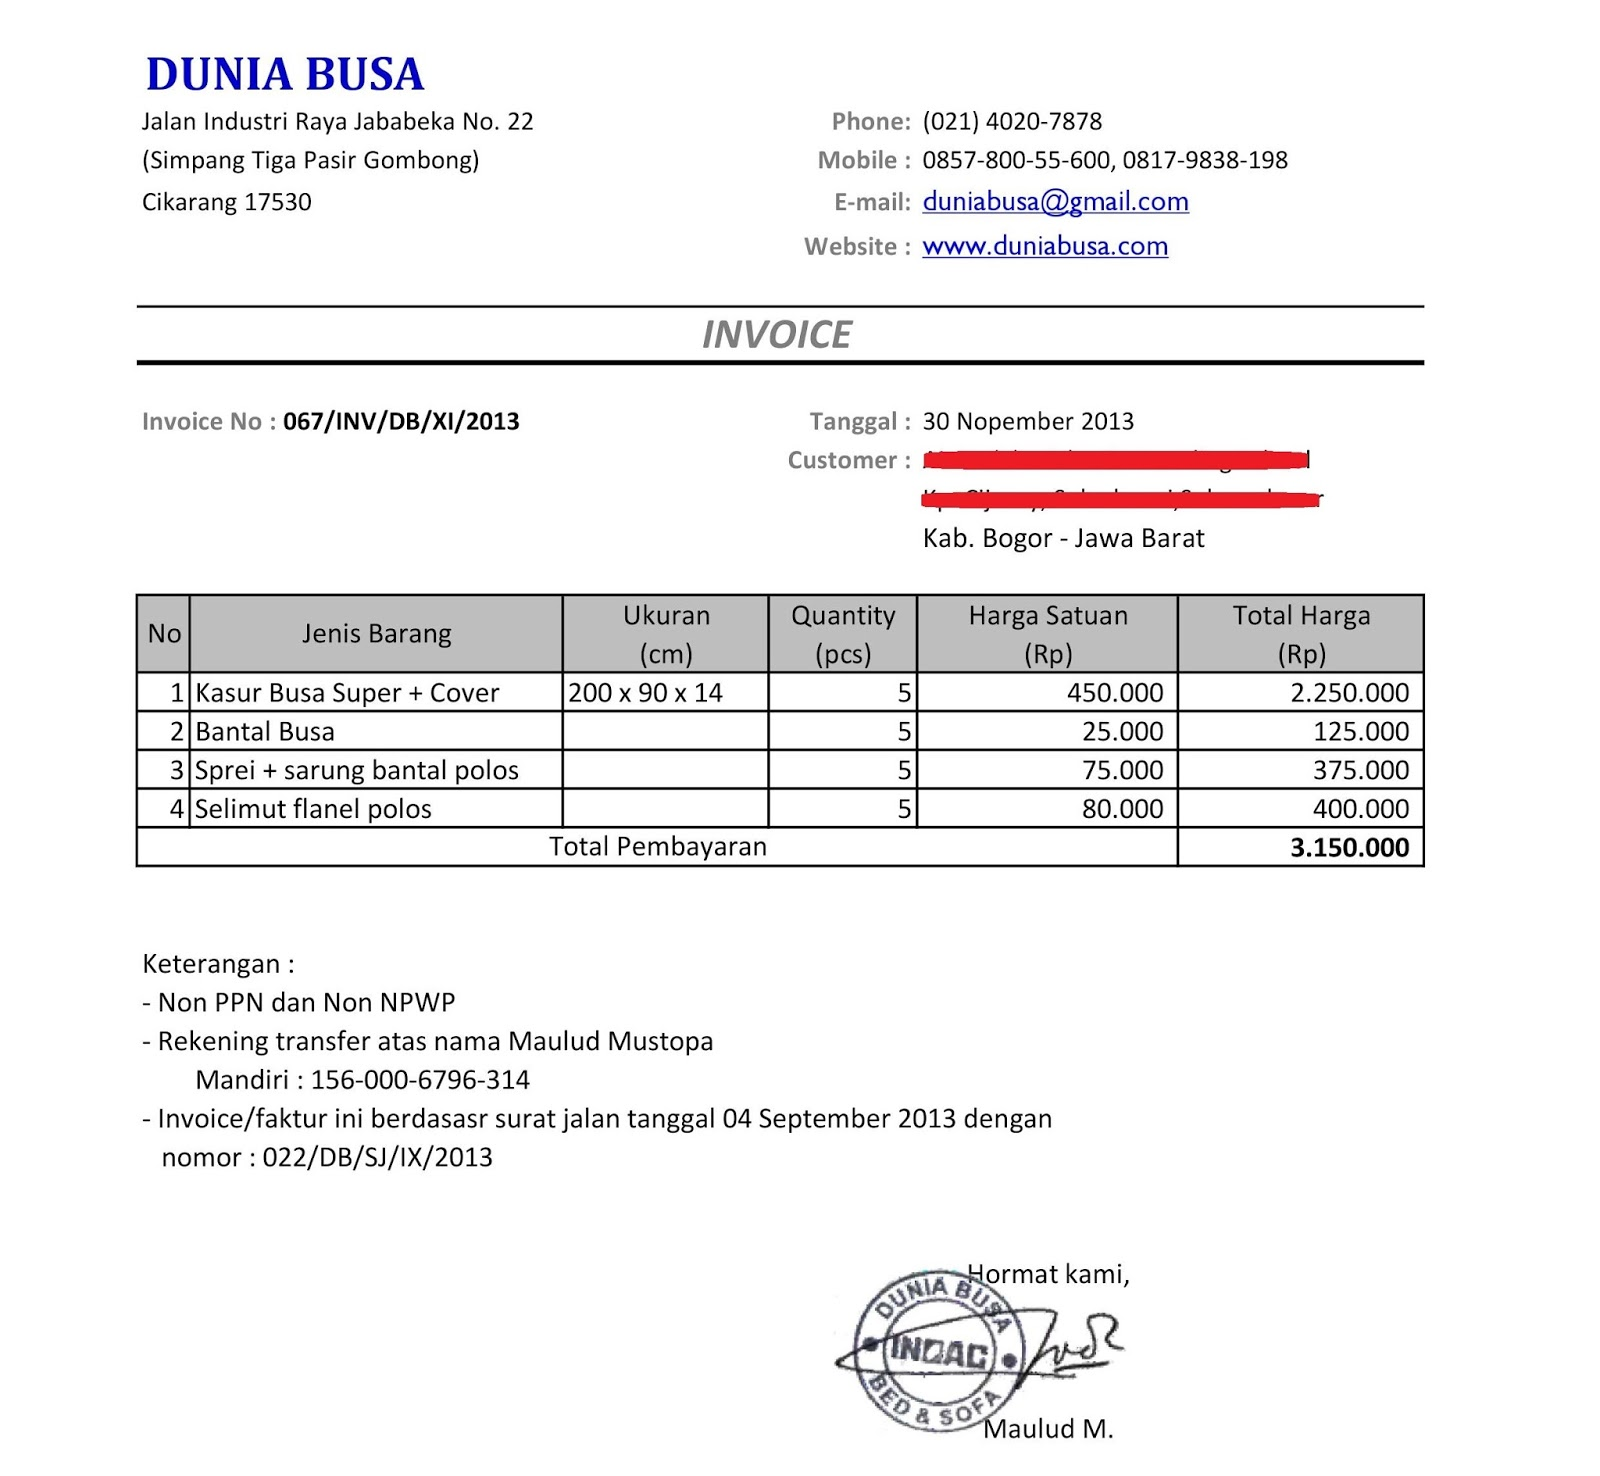 Usdgus  Wonderful Free Invoice Online  Create Invoice Online  Invoice Template  With Outstanding Contoh Format Invoice Atau Surat Tagihan  Brankas Arsip  Free Invoice Online With Comely Car Rental Invoice Also Free Invoice Templates To Download In Addition Sample Construction Invoice And Microsoft Templates Invoice As Well As Microsoft Template Invoice Additionally Fake Invoice Template From Sklepco With Usdgus  Outstanding Free Invoice Online  Create Invoice Online  Invoice Template  With Comely Contoh Format Invoice Atau Surat Tagihan  Brankas Arsip  Free Invoice Online And Wonderful Car Rental Invoice Also Free Invoice Templates To Download In Addition Sample Construction Invoice From Sklepco